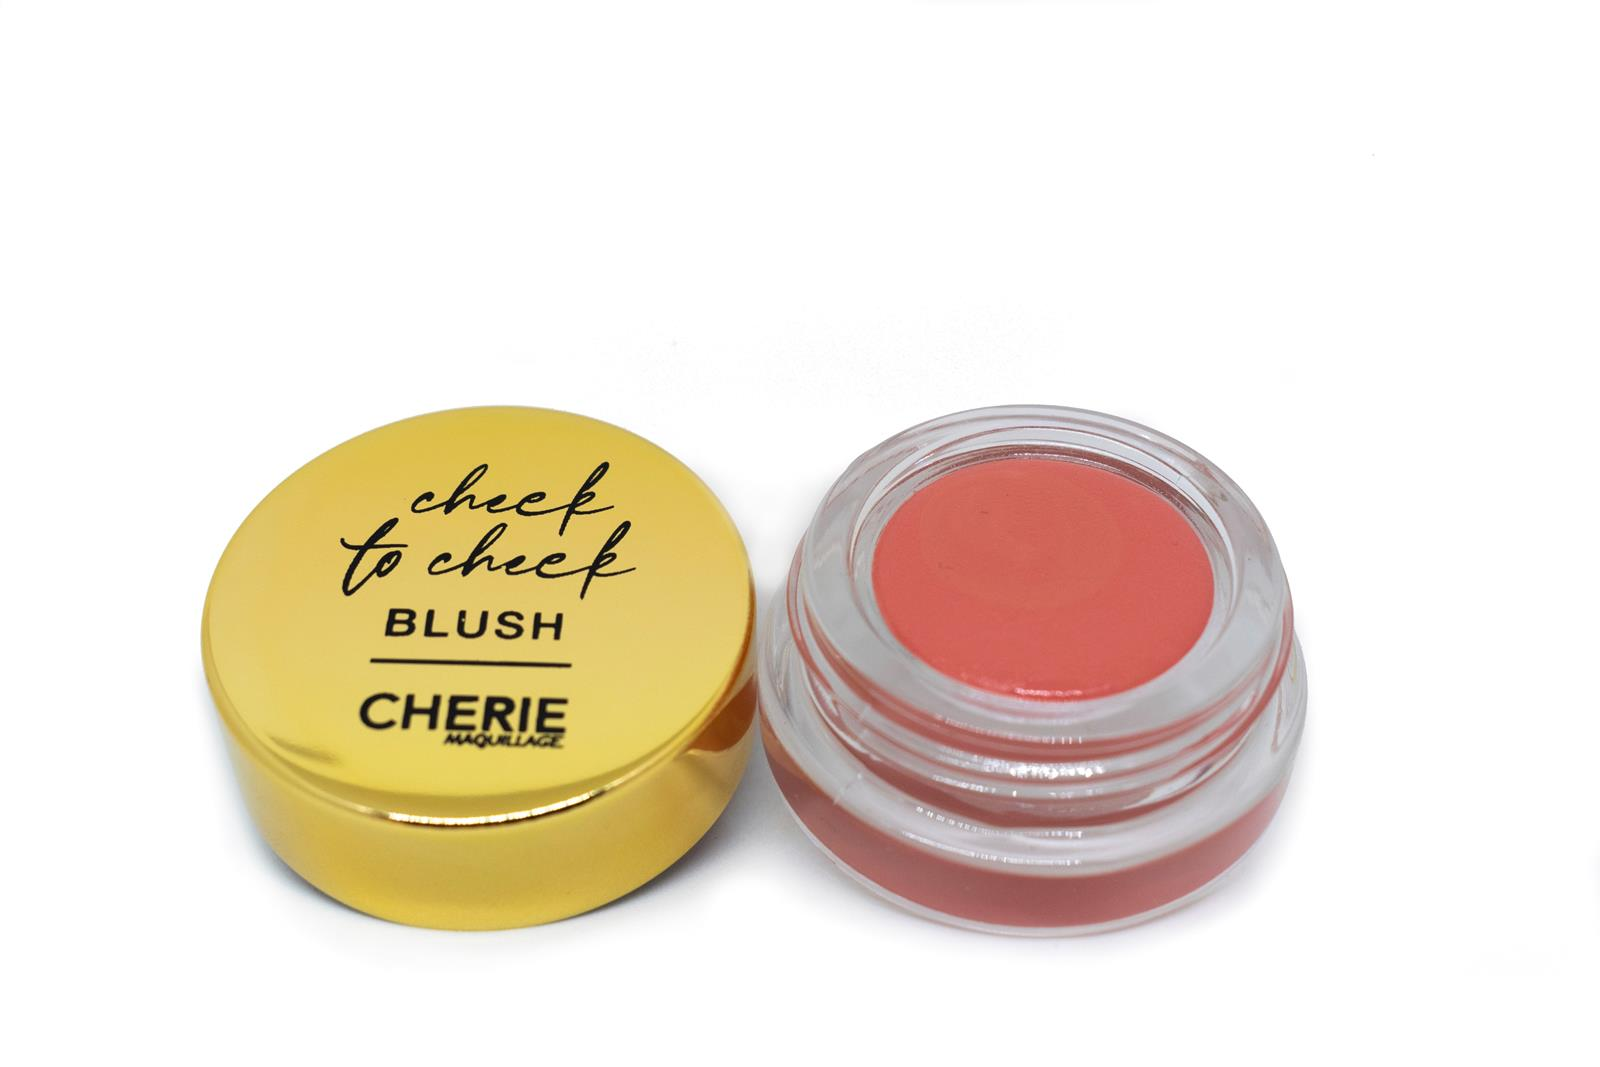 Check to Check Blouge Cherie Maquillage